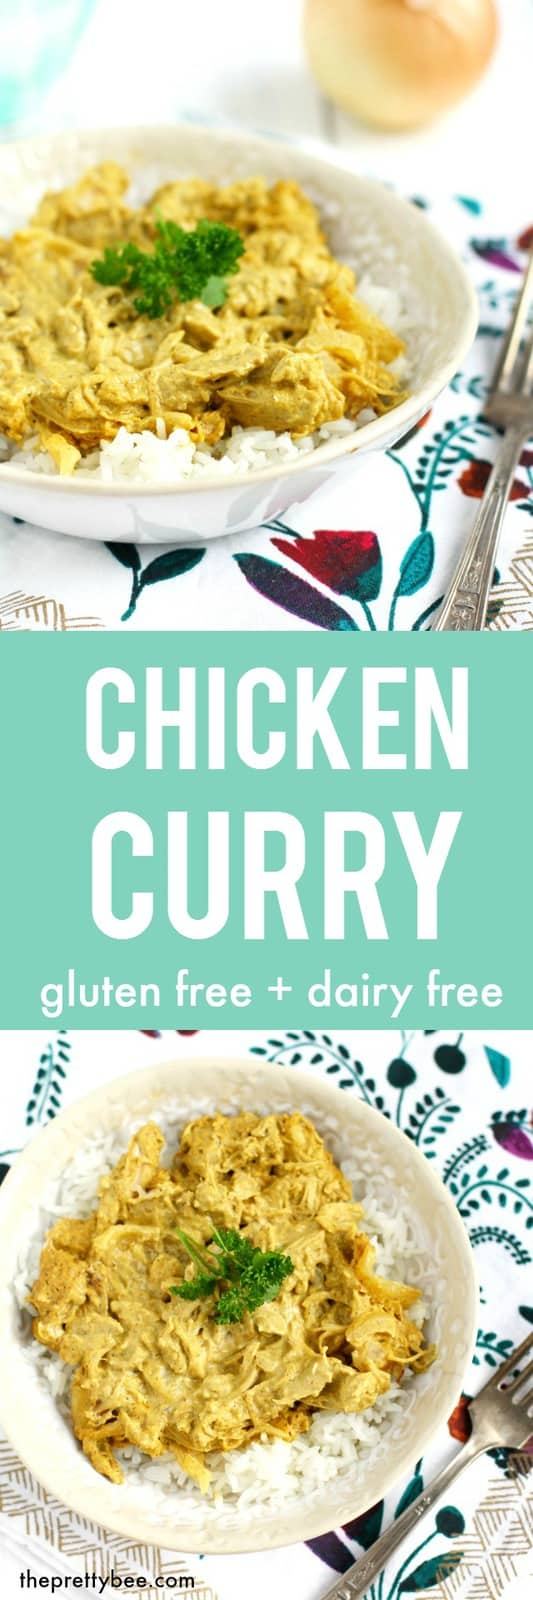 Easy and delicious chicken curry - this is a fast recipe that your family will love!